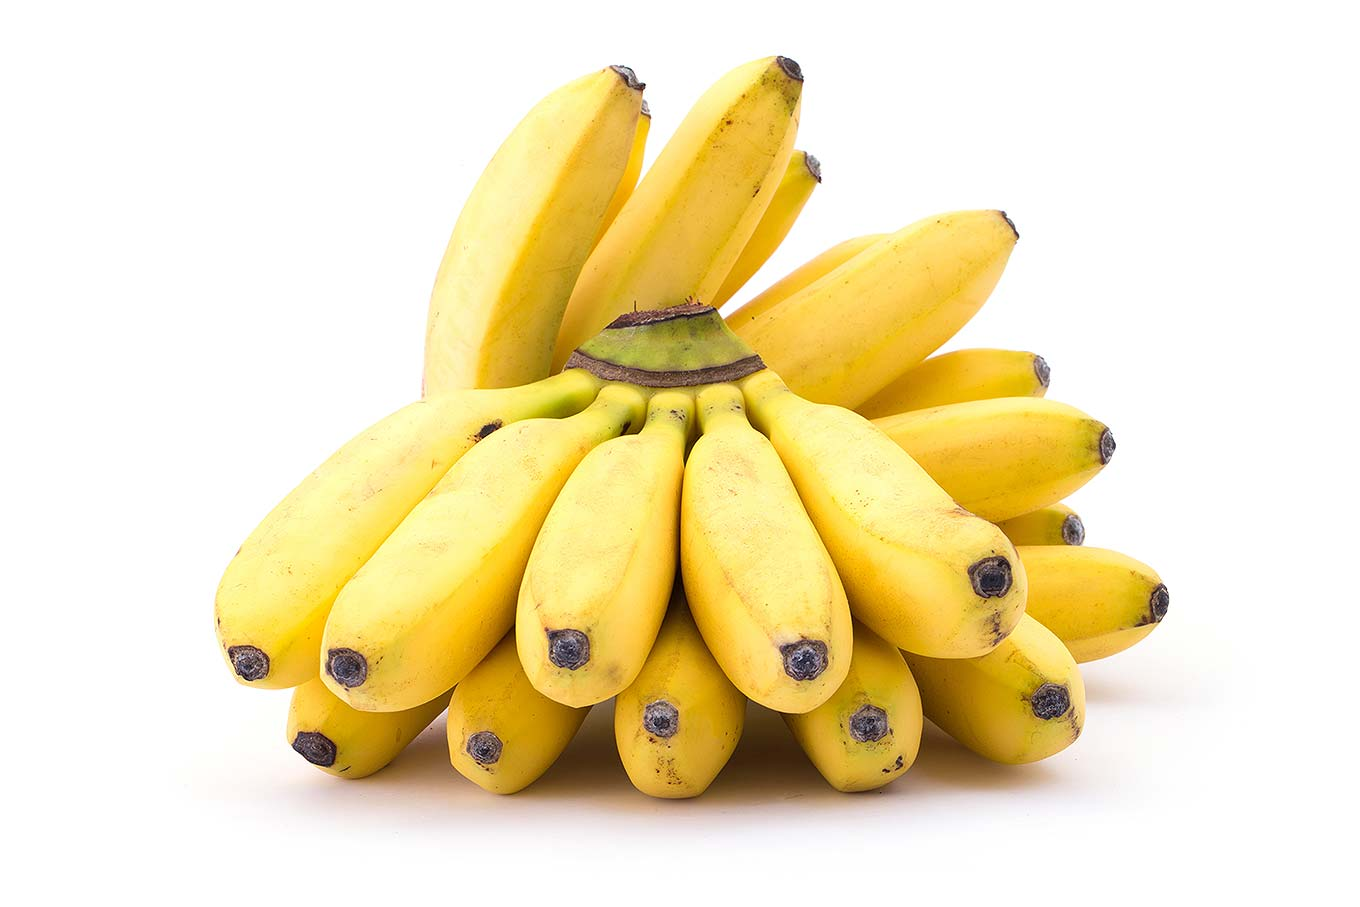 The Banana Split: Can Bananas Really Help You Lose Weight?